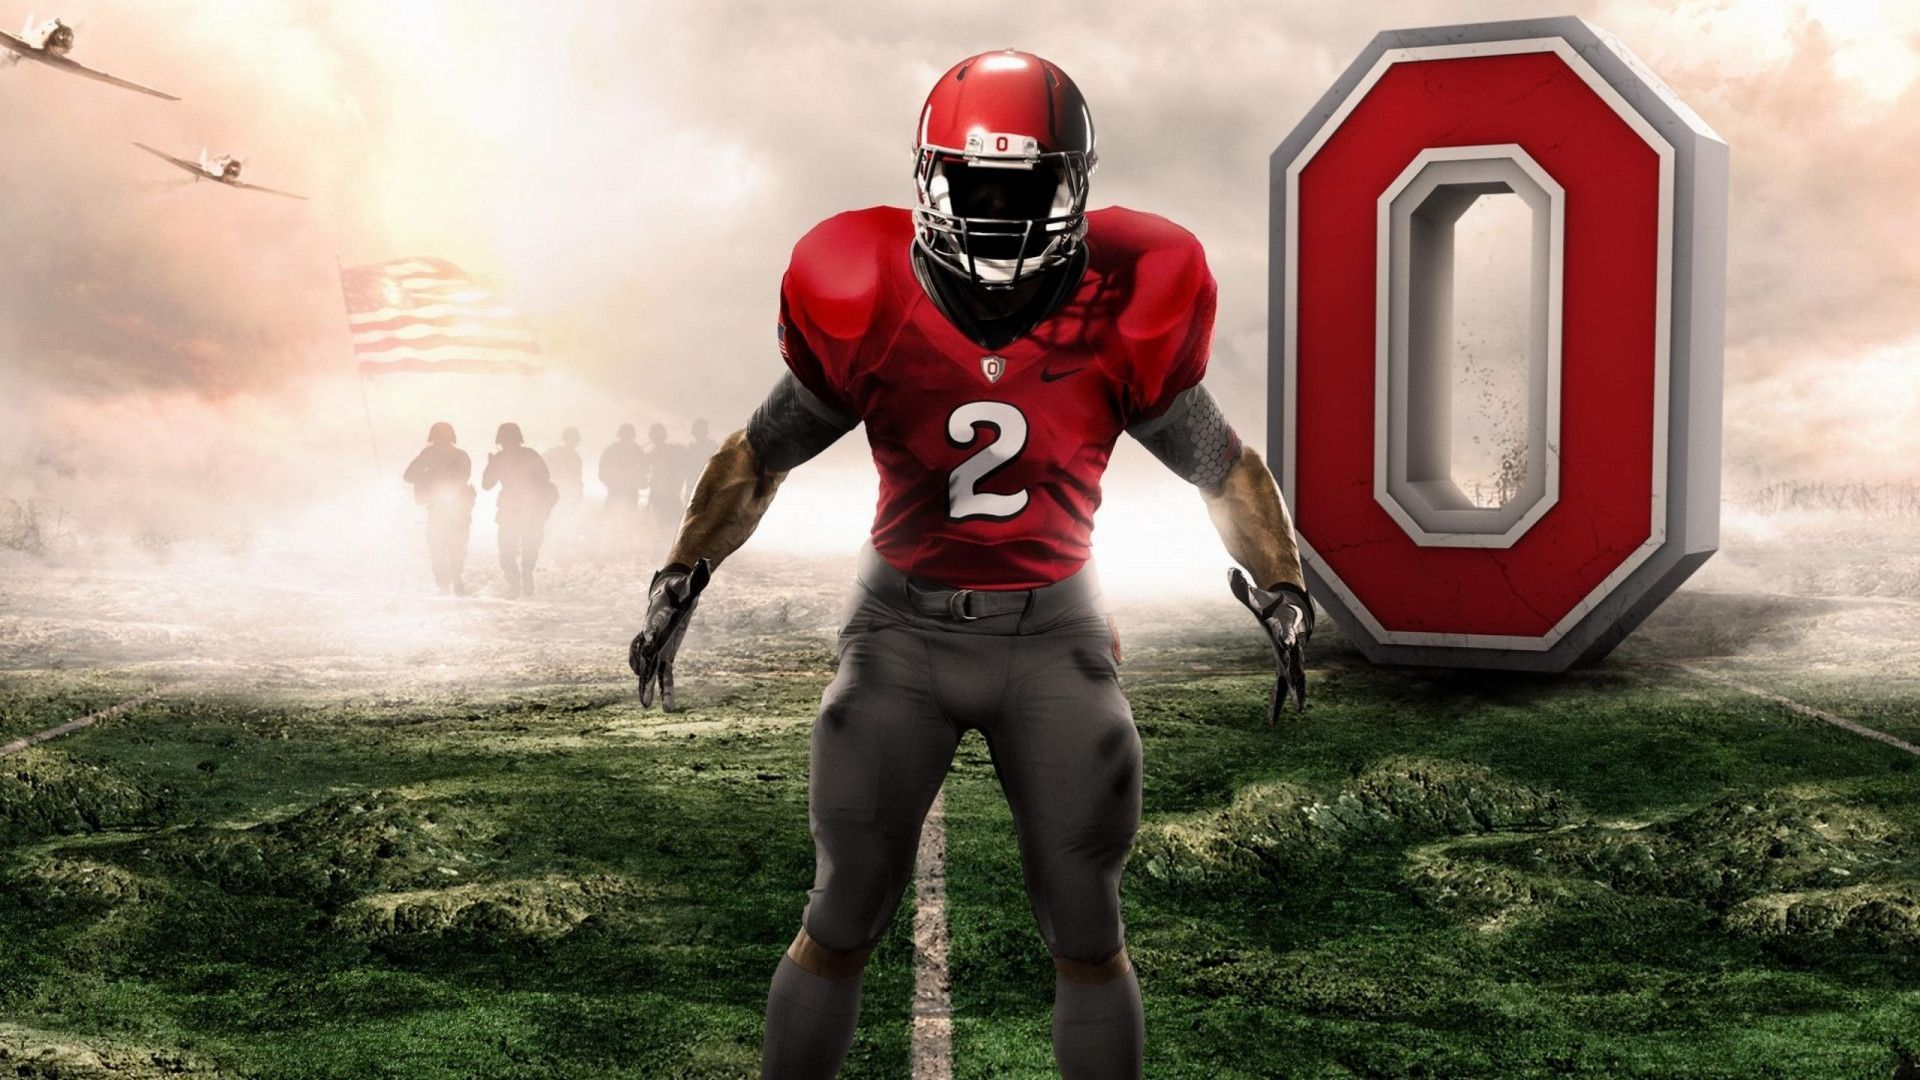 College Football Wallpapers Wallpaper Cave Ohio State Football Players Ohio State Buckeyes Football Ohio State Wallpaper